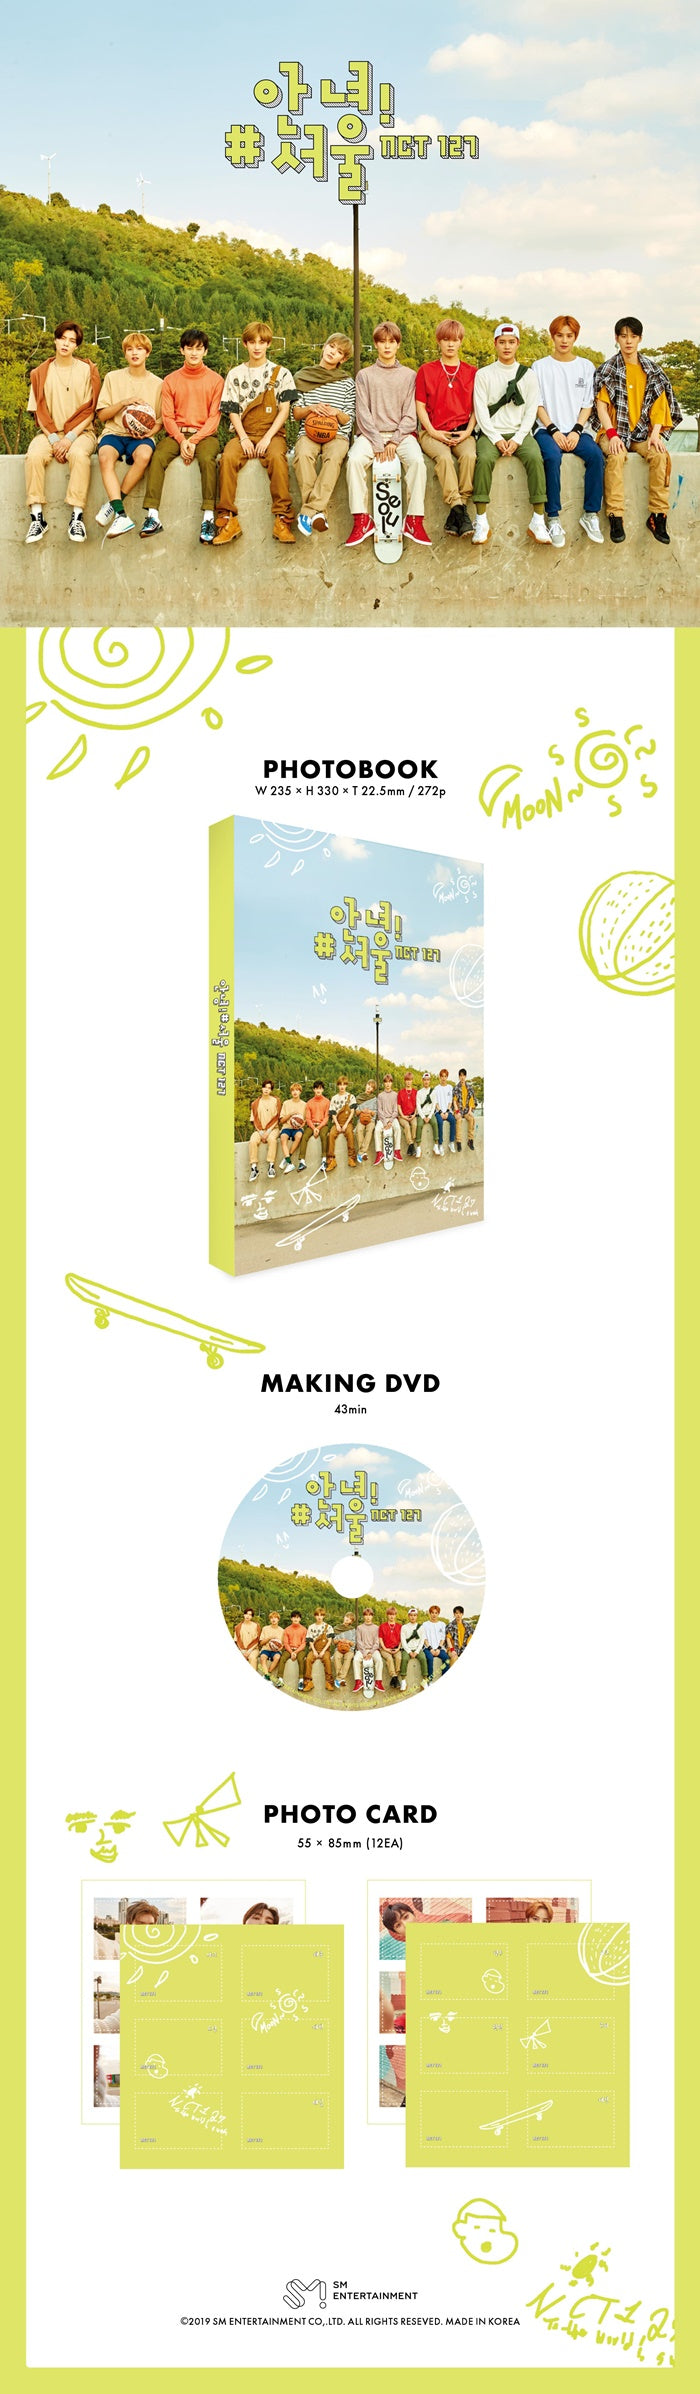 NCT 127 PHOTOBOOK WITH DVD